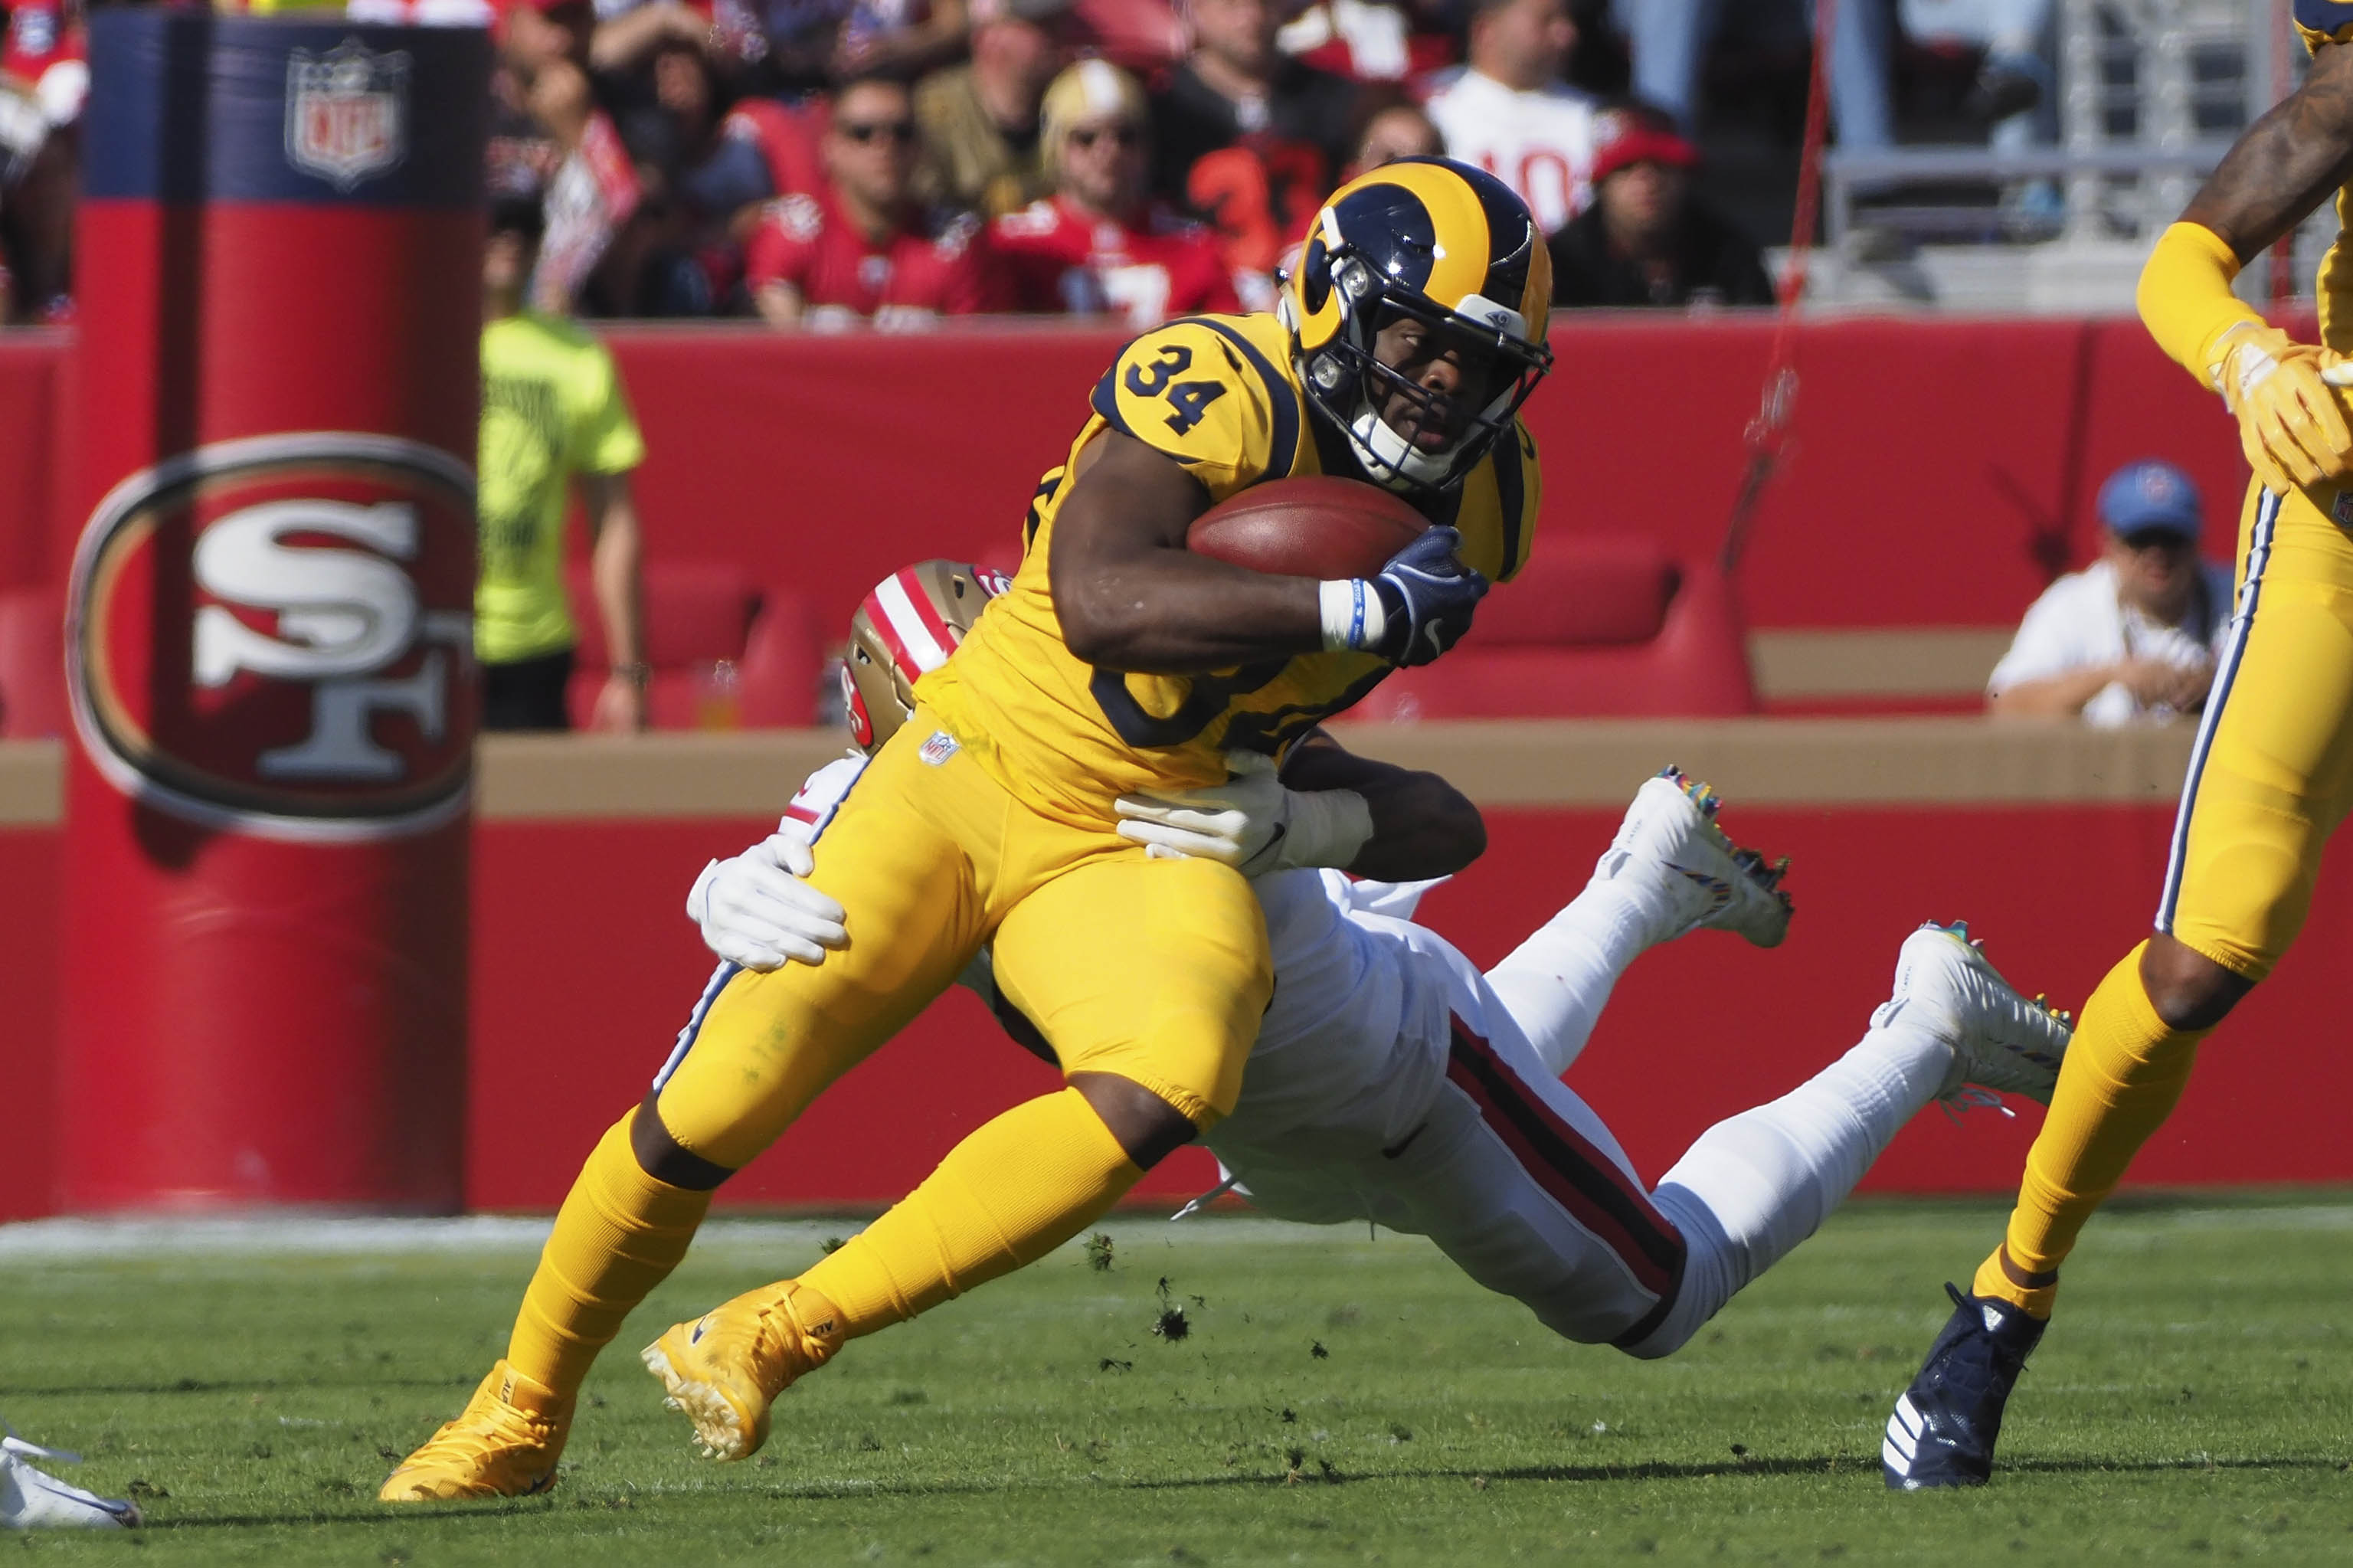 Los Angeles Rams RB Malcolm Brown carries the ball against the San Francisco 49ers, Oct. 21, 2018.